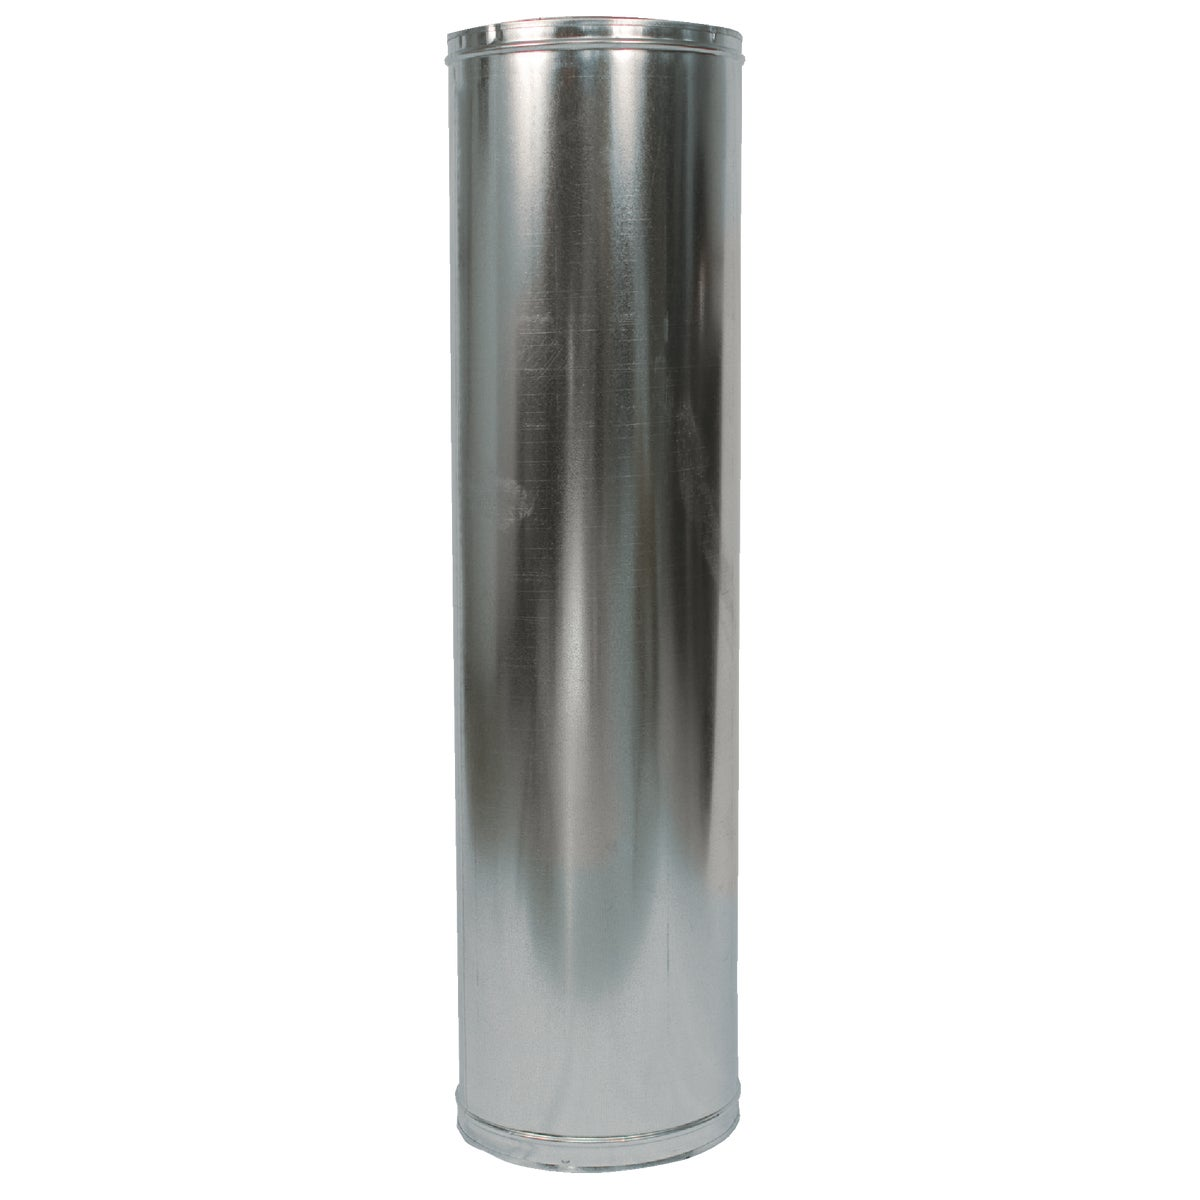 "48"" DOUBLE WALL PIPE - 48-8DM by Fmi Products Llc"